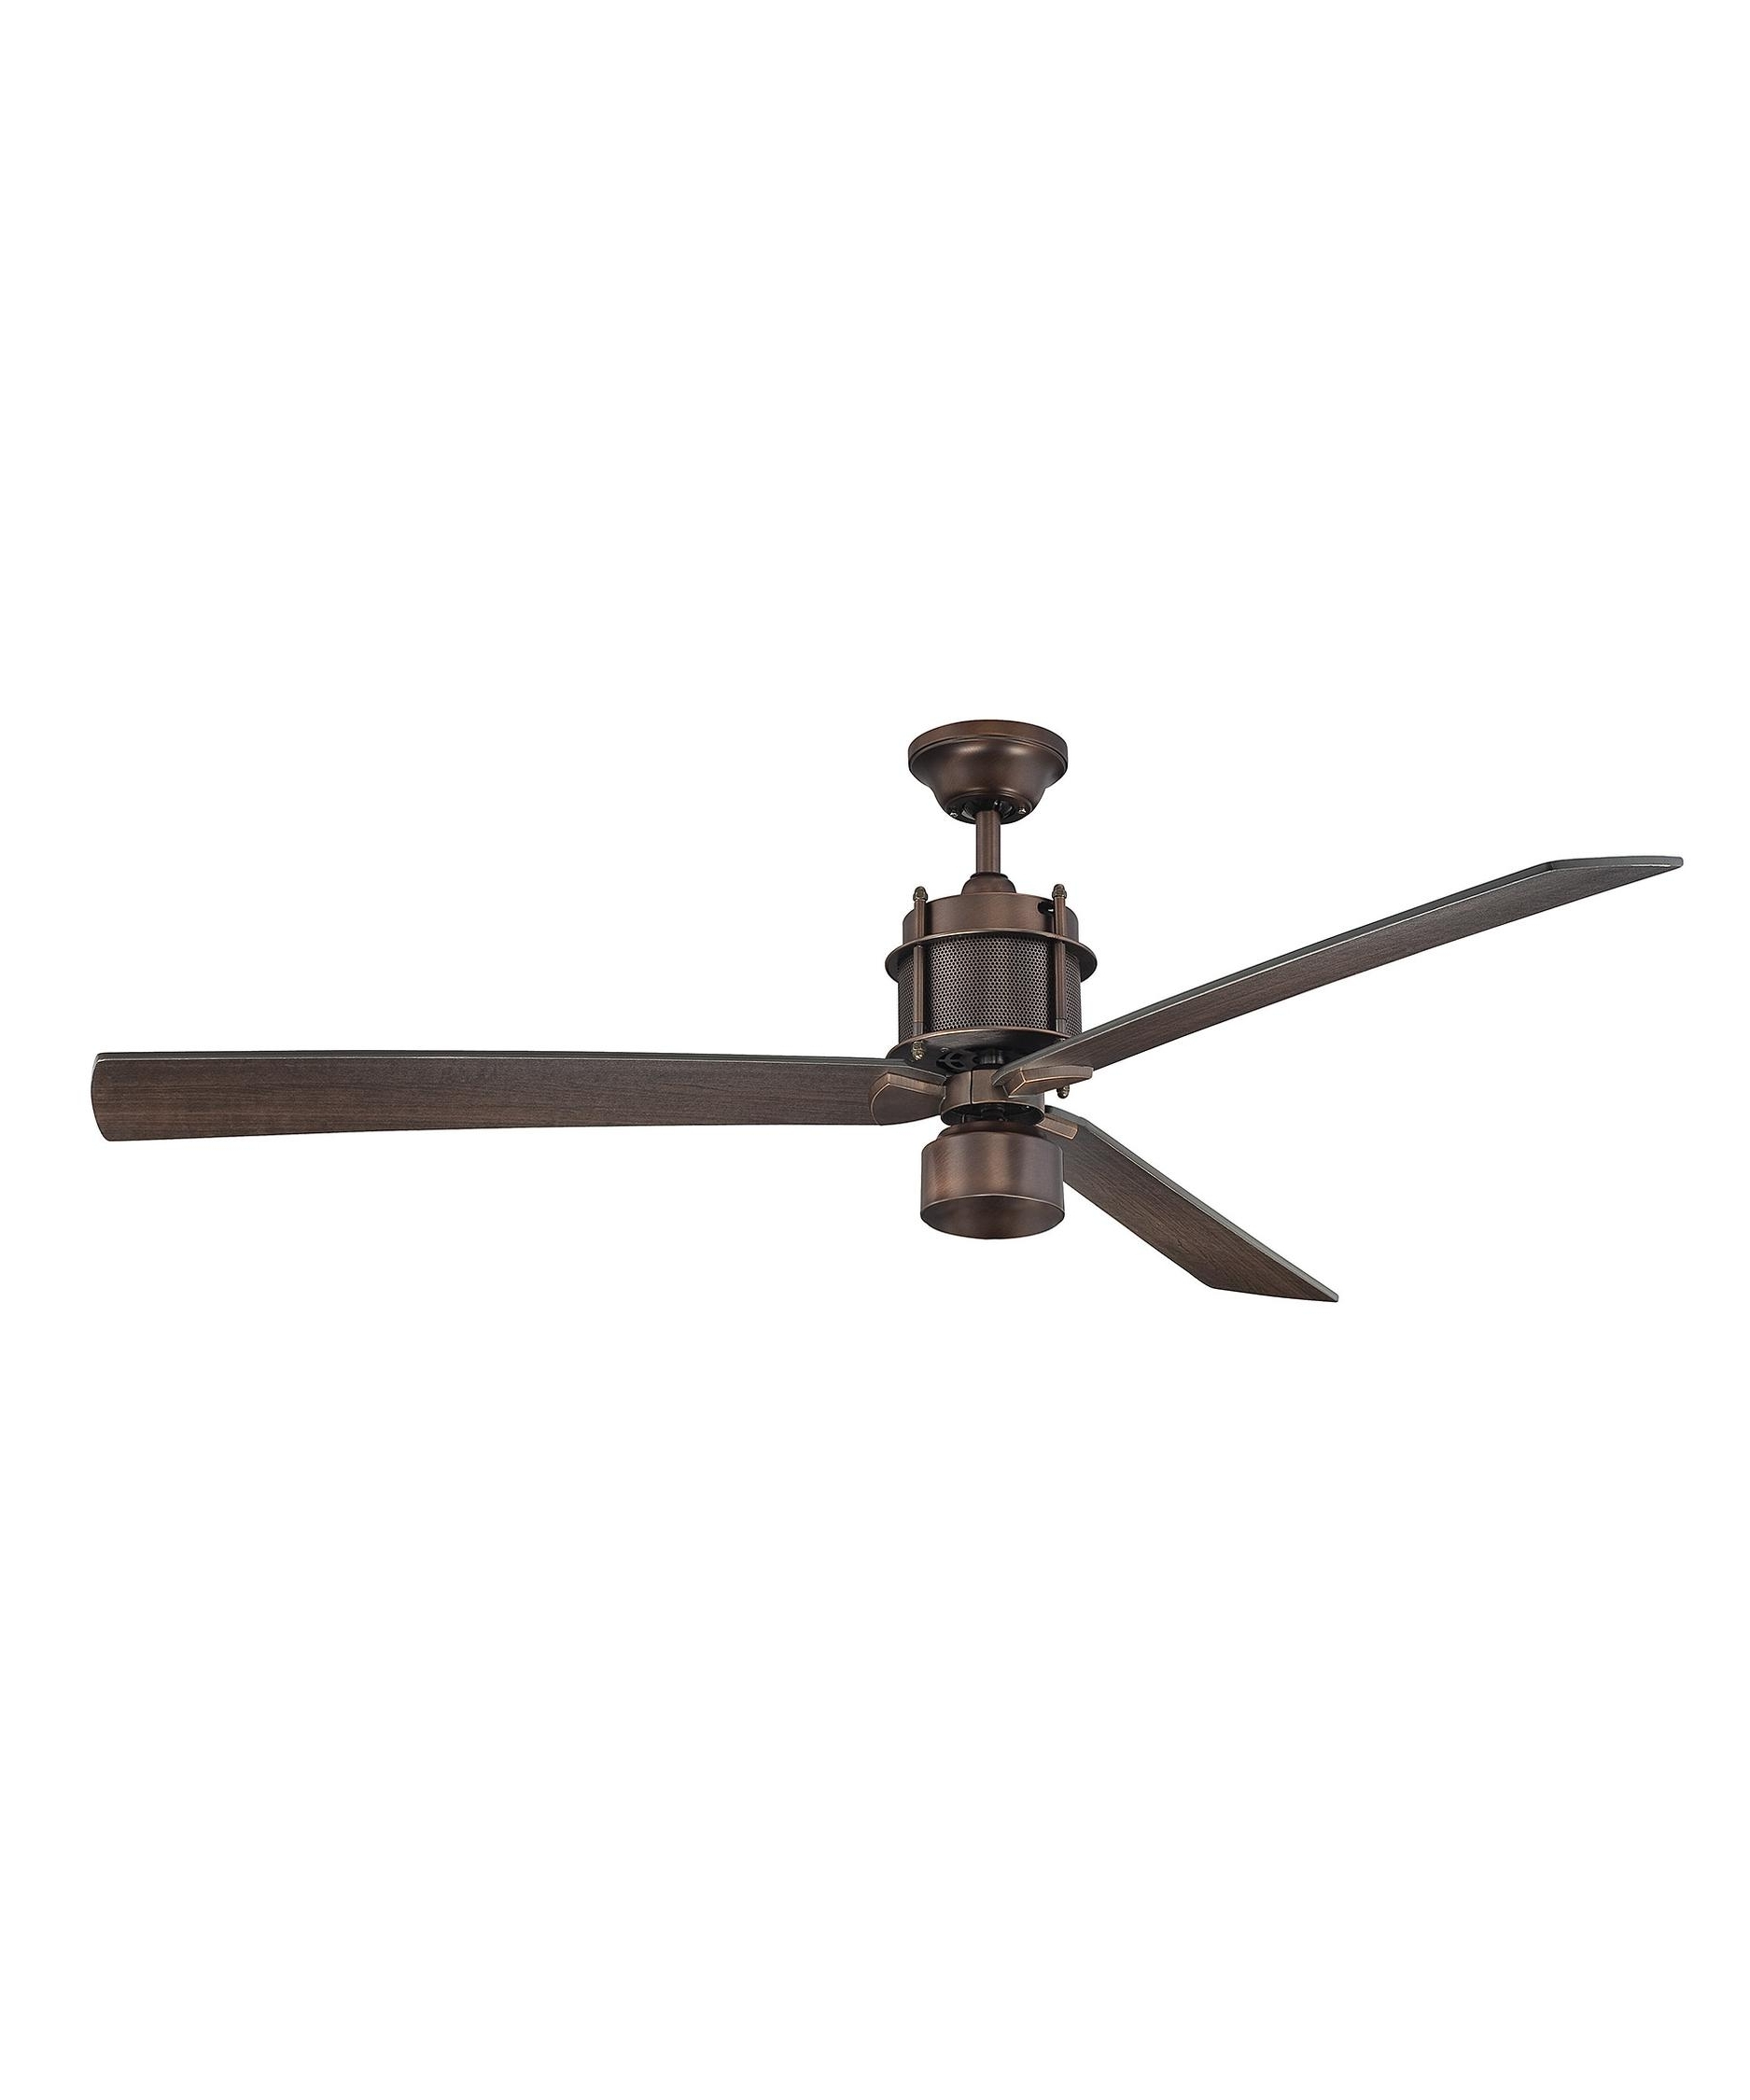 Savoy House 56 870 3 Muir 56 Inch 3 Blade Ceiling Fan (View 16 of 20)